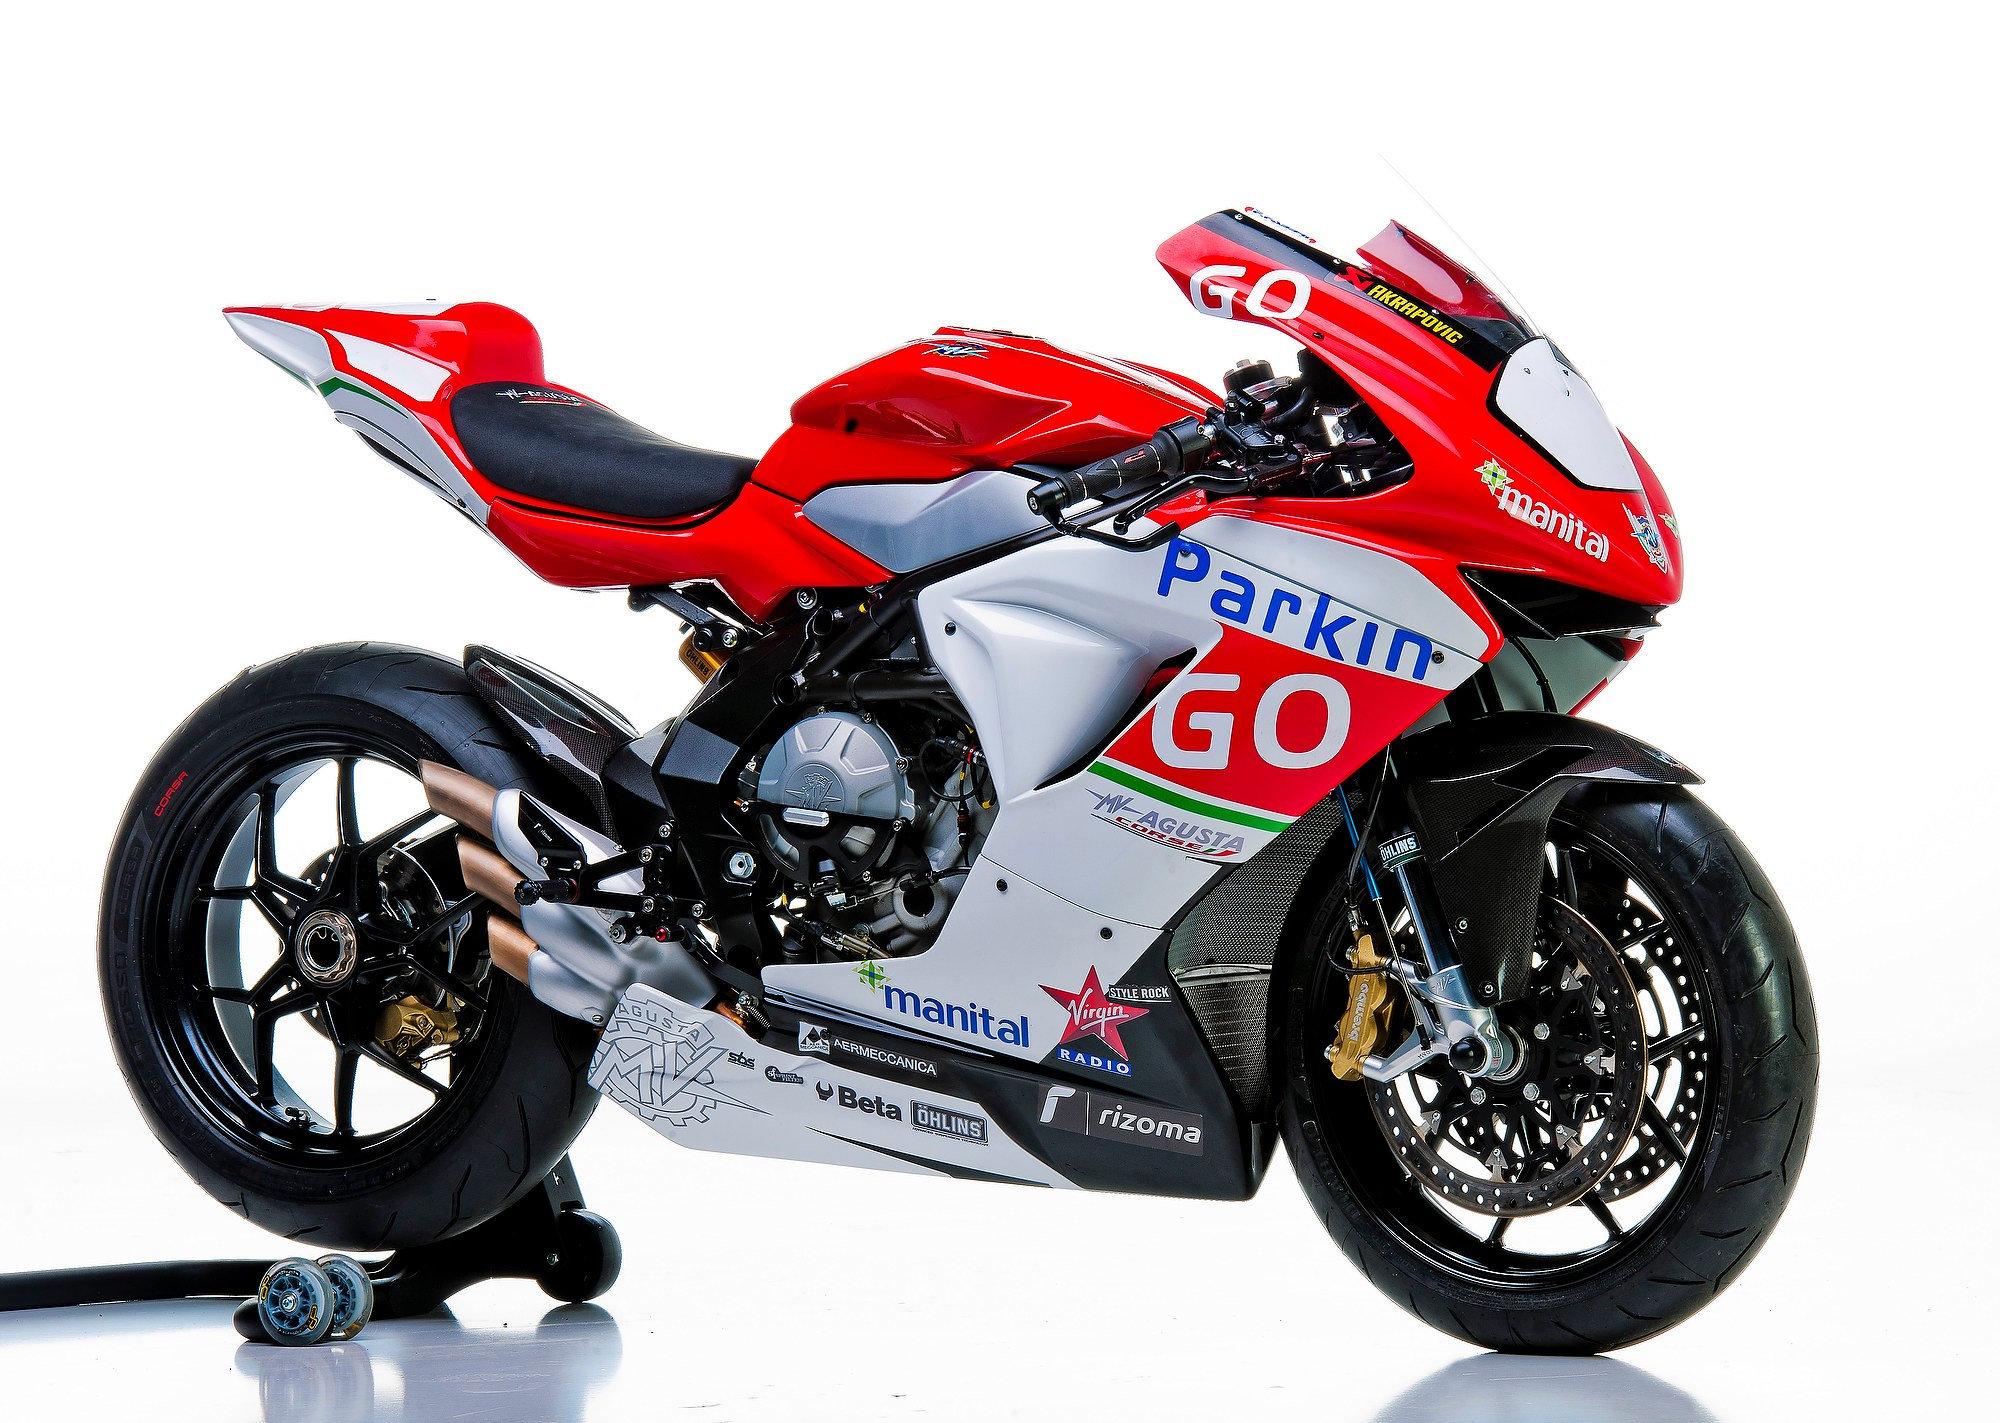 This is the MV Agusta Corse ParkinGO Supersport Race Bike ... Race Bike Photos